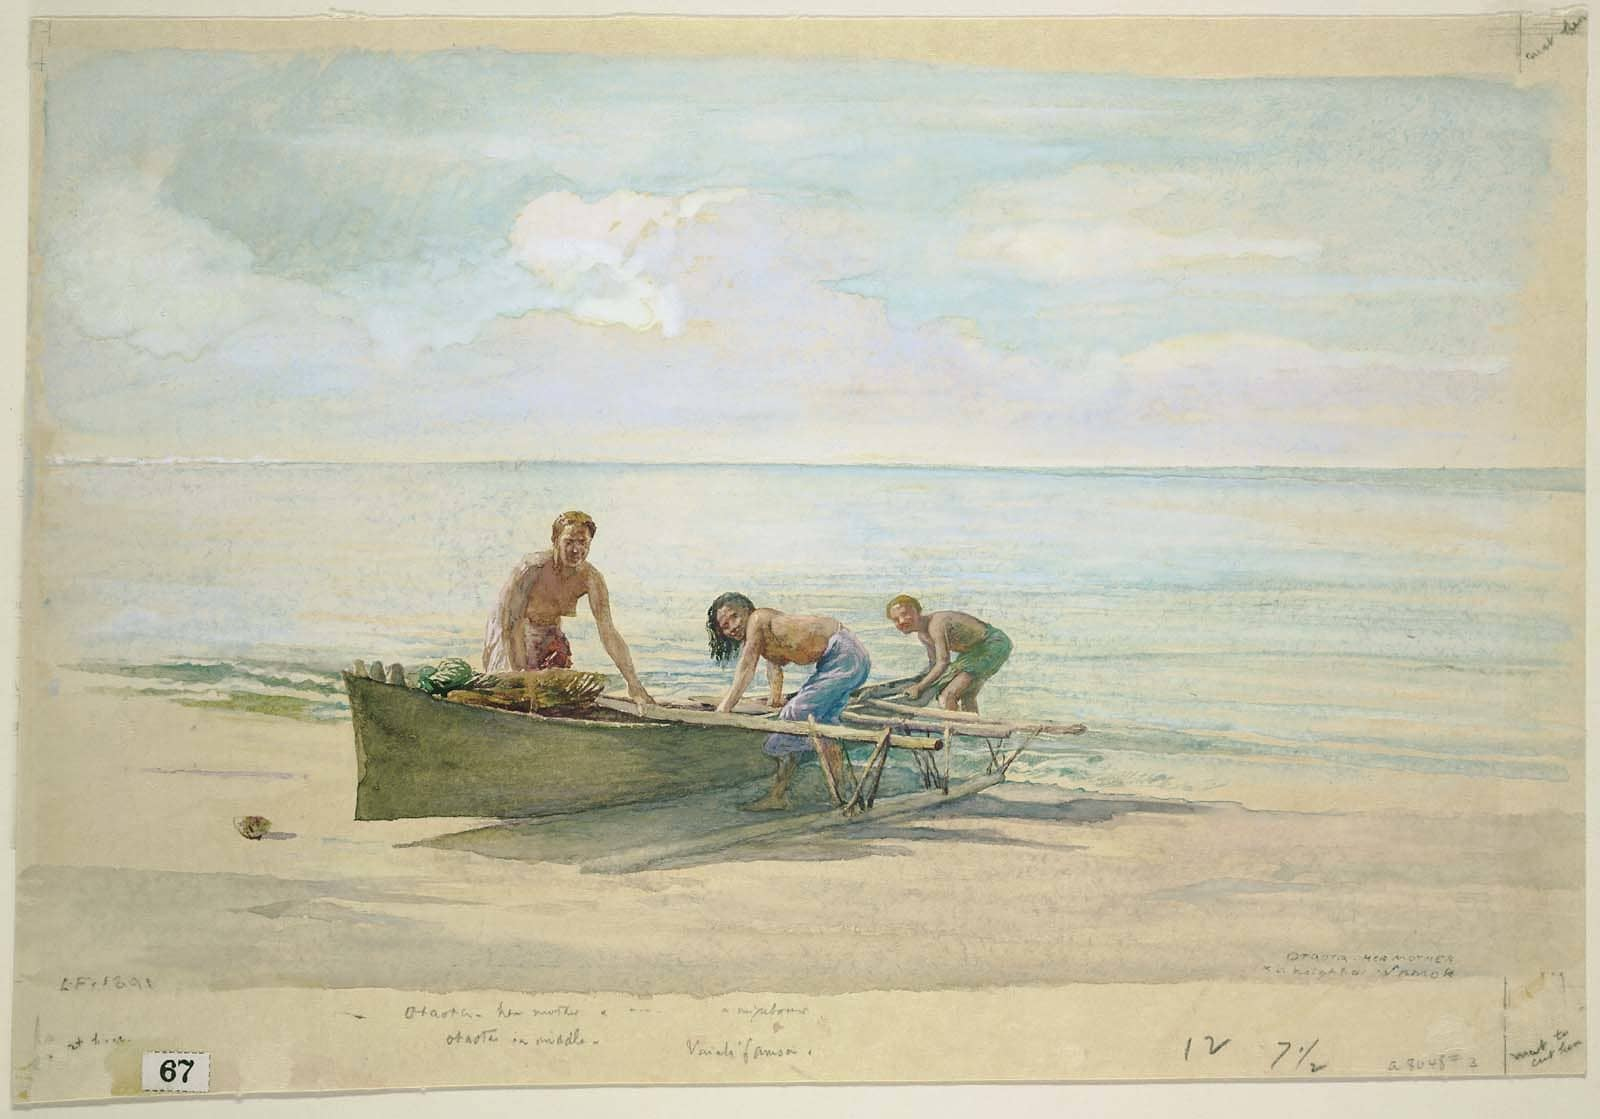 Watercolour painting. Three women pull a Pacific canoe out of the water onto a sandy beach.